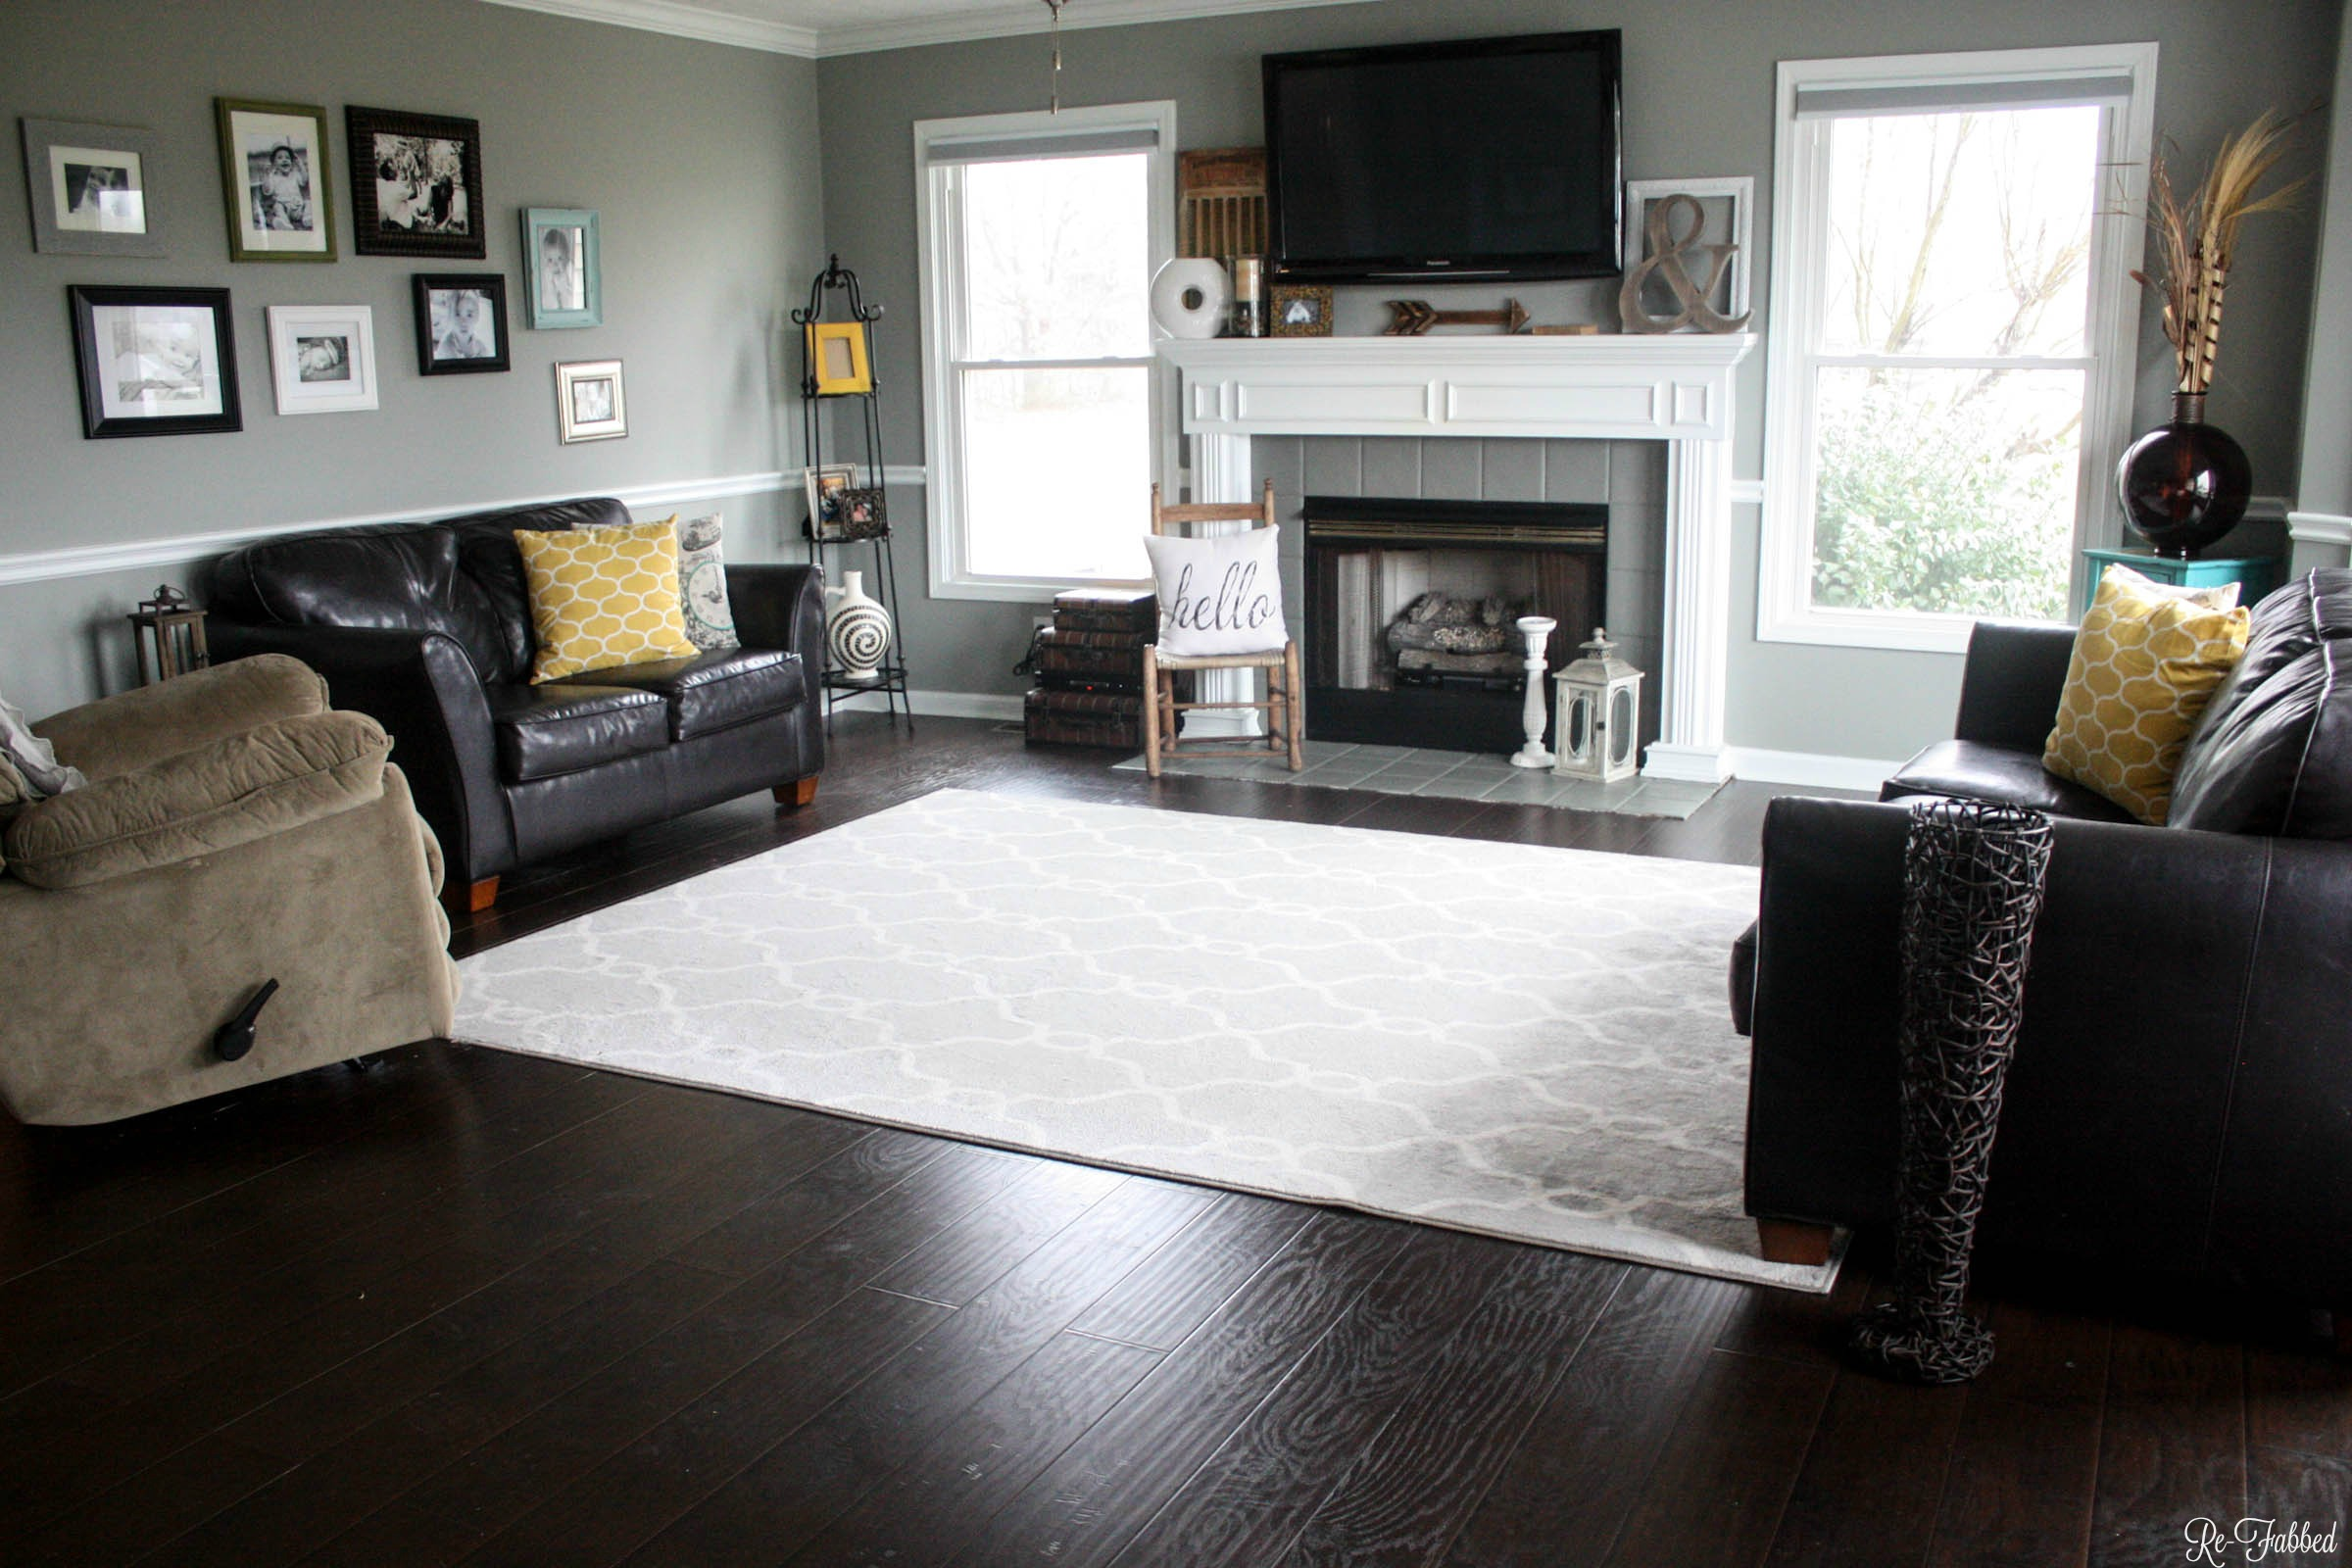 New Living Room Layout - Re-Fabbed